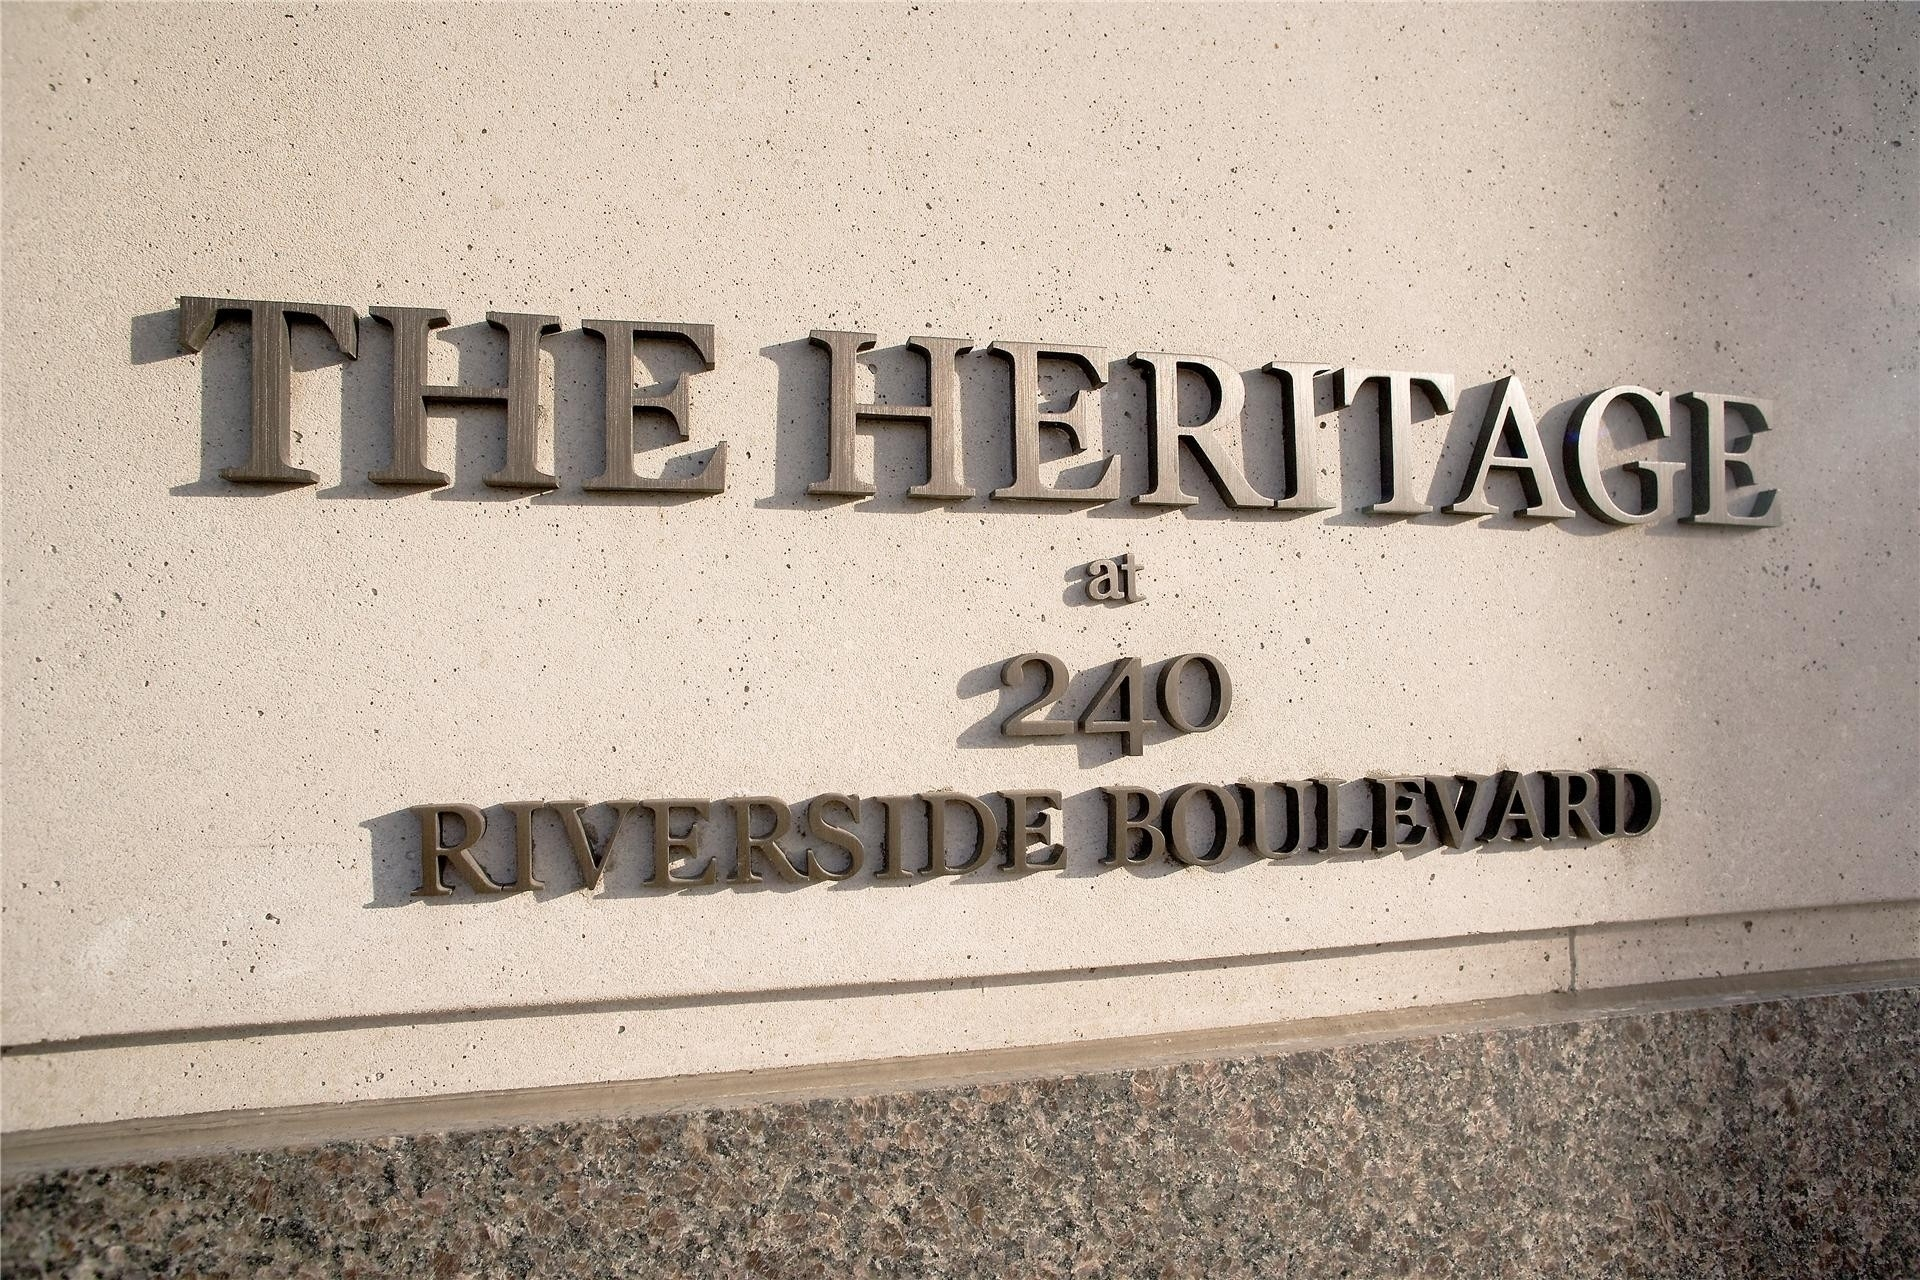 2. The Heritage building at 240 Riverside Boulevard, Lincoln Square, New York, NY